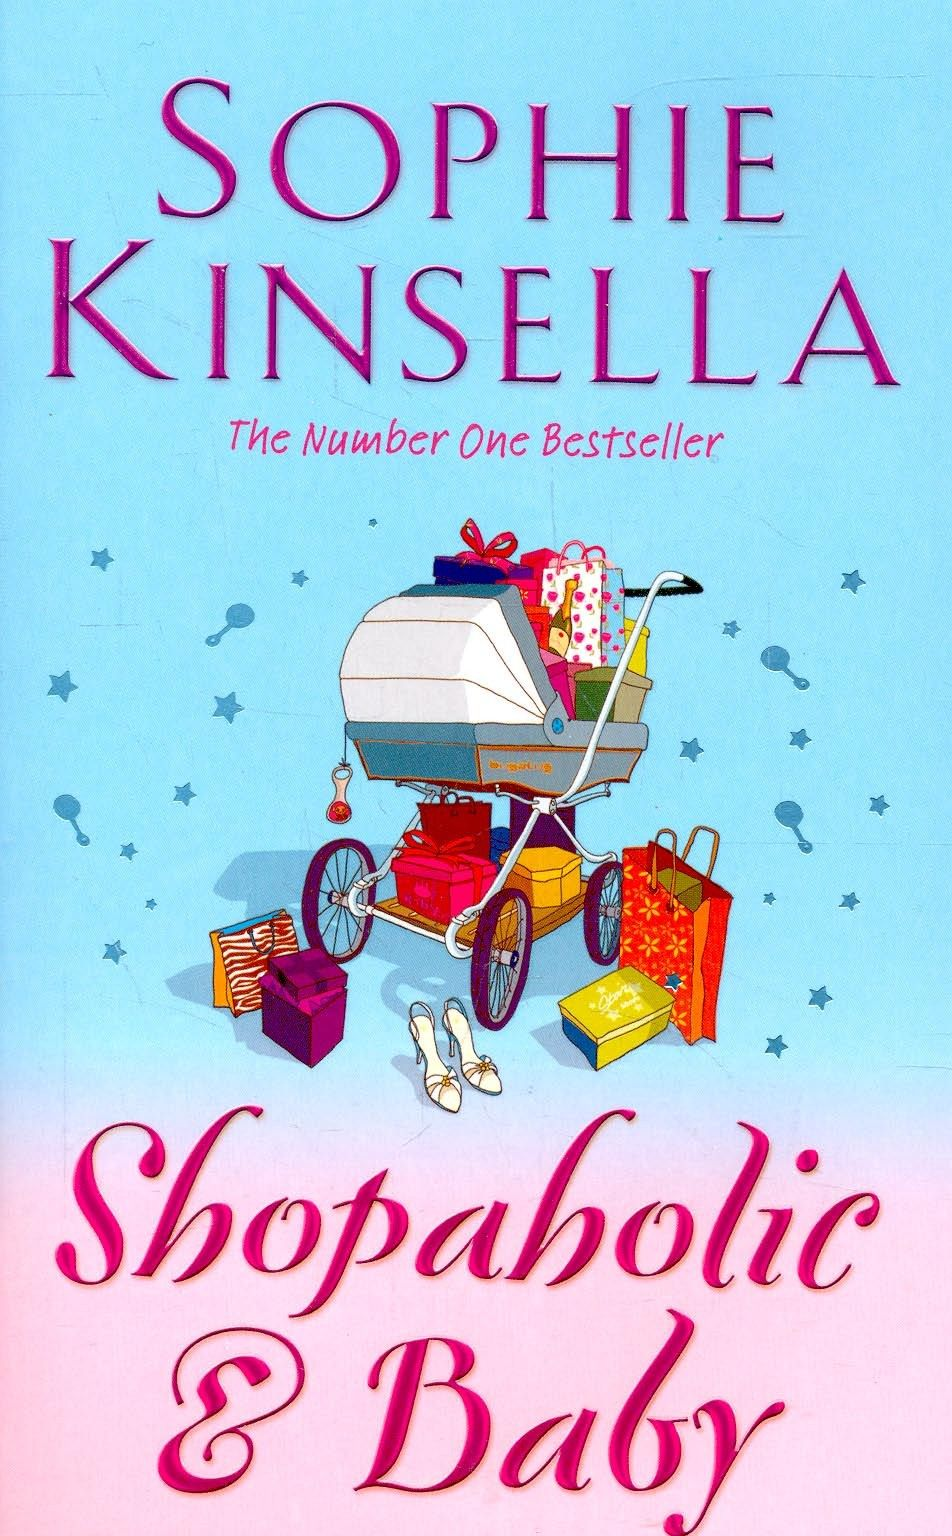 Pin By Jean Schutt On Favorite Authors Sophie Kinsella Books Books Sophie Kinsella